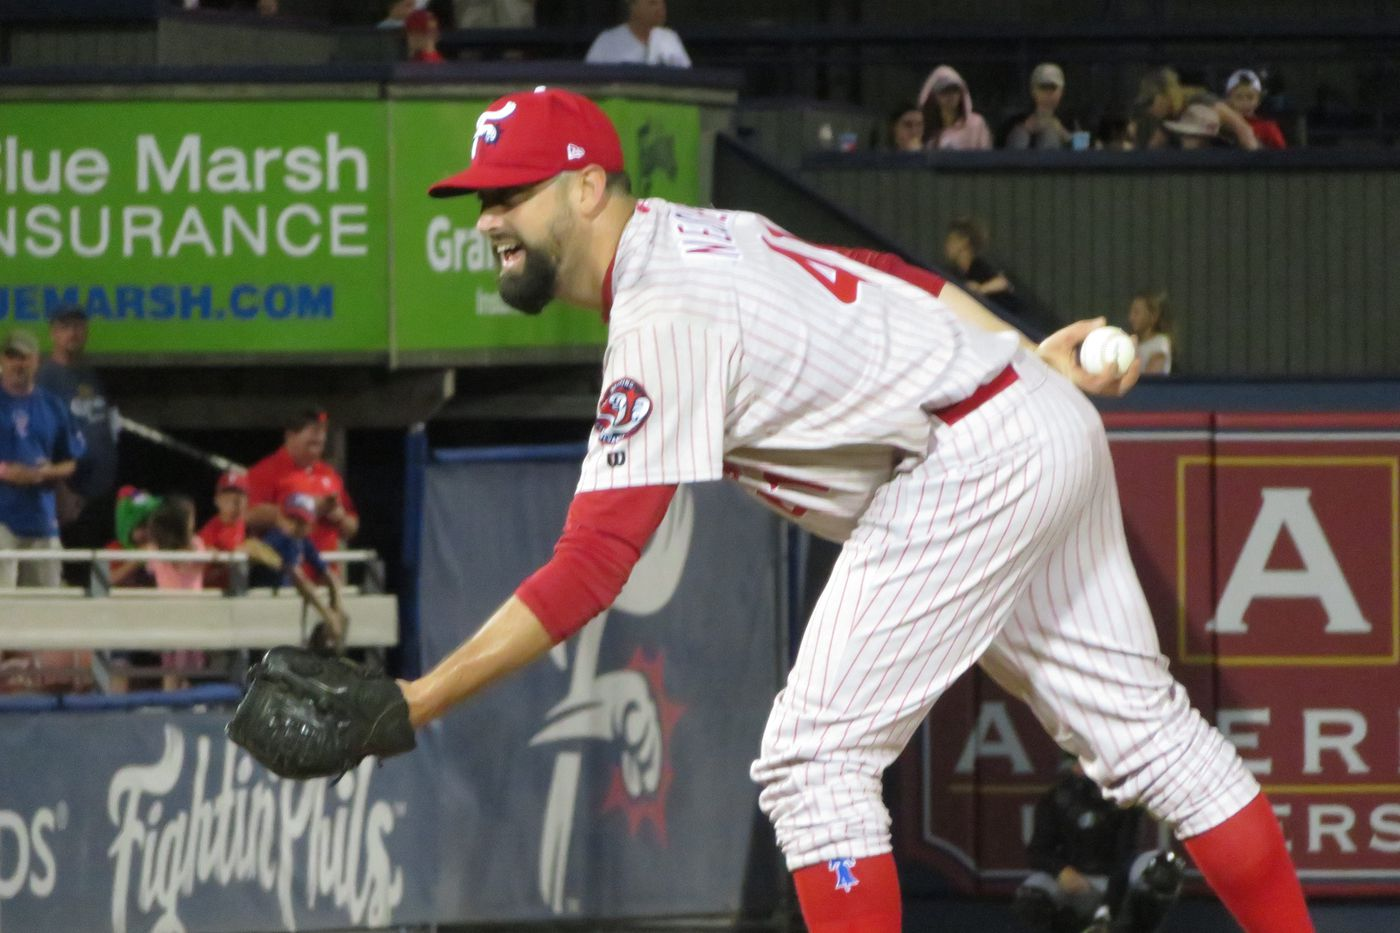 Phillies reliever Pat Neshek makes second rehab appearance, pitching an inning at Reading